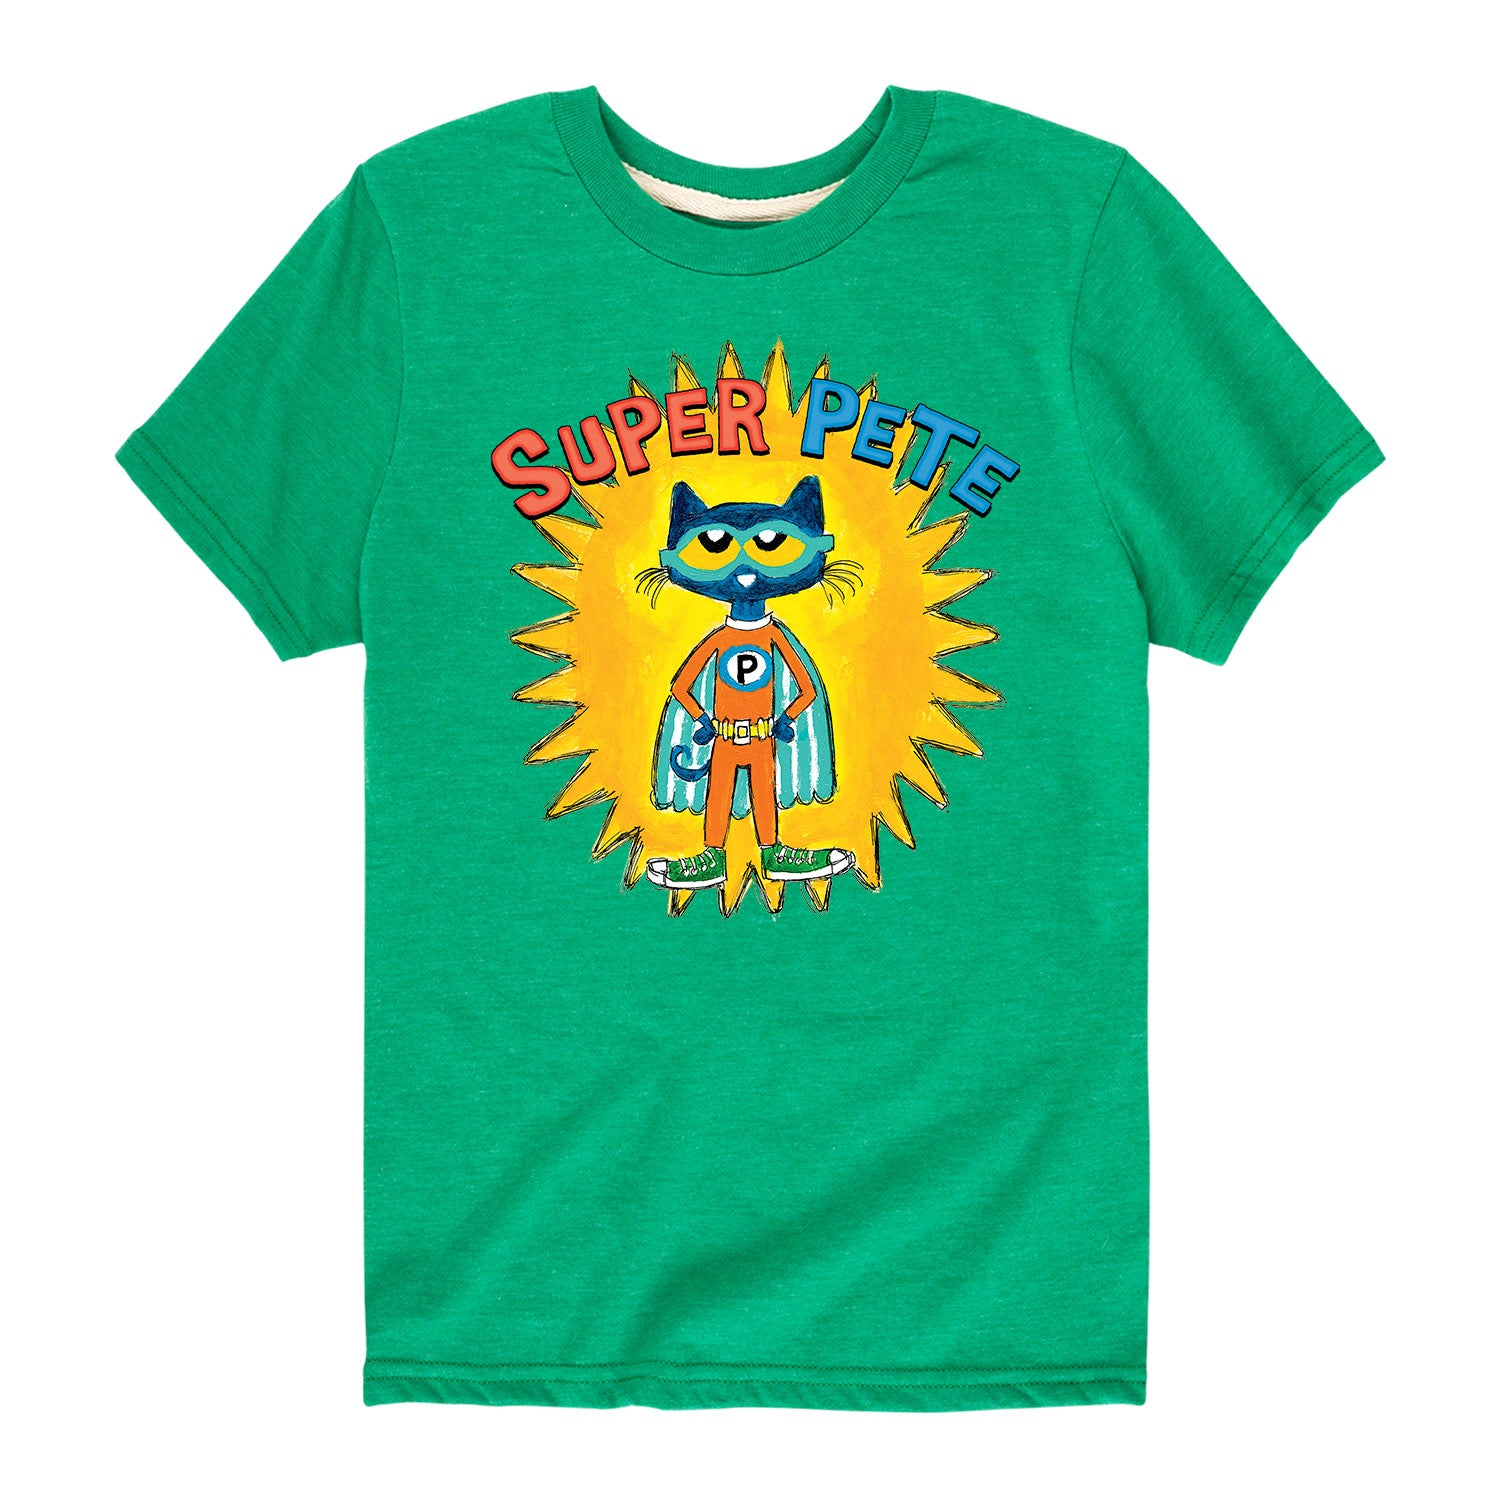 Super Pete With Yellow Burst - Youth & Toddler Short Sleeve T-Shirt